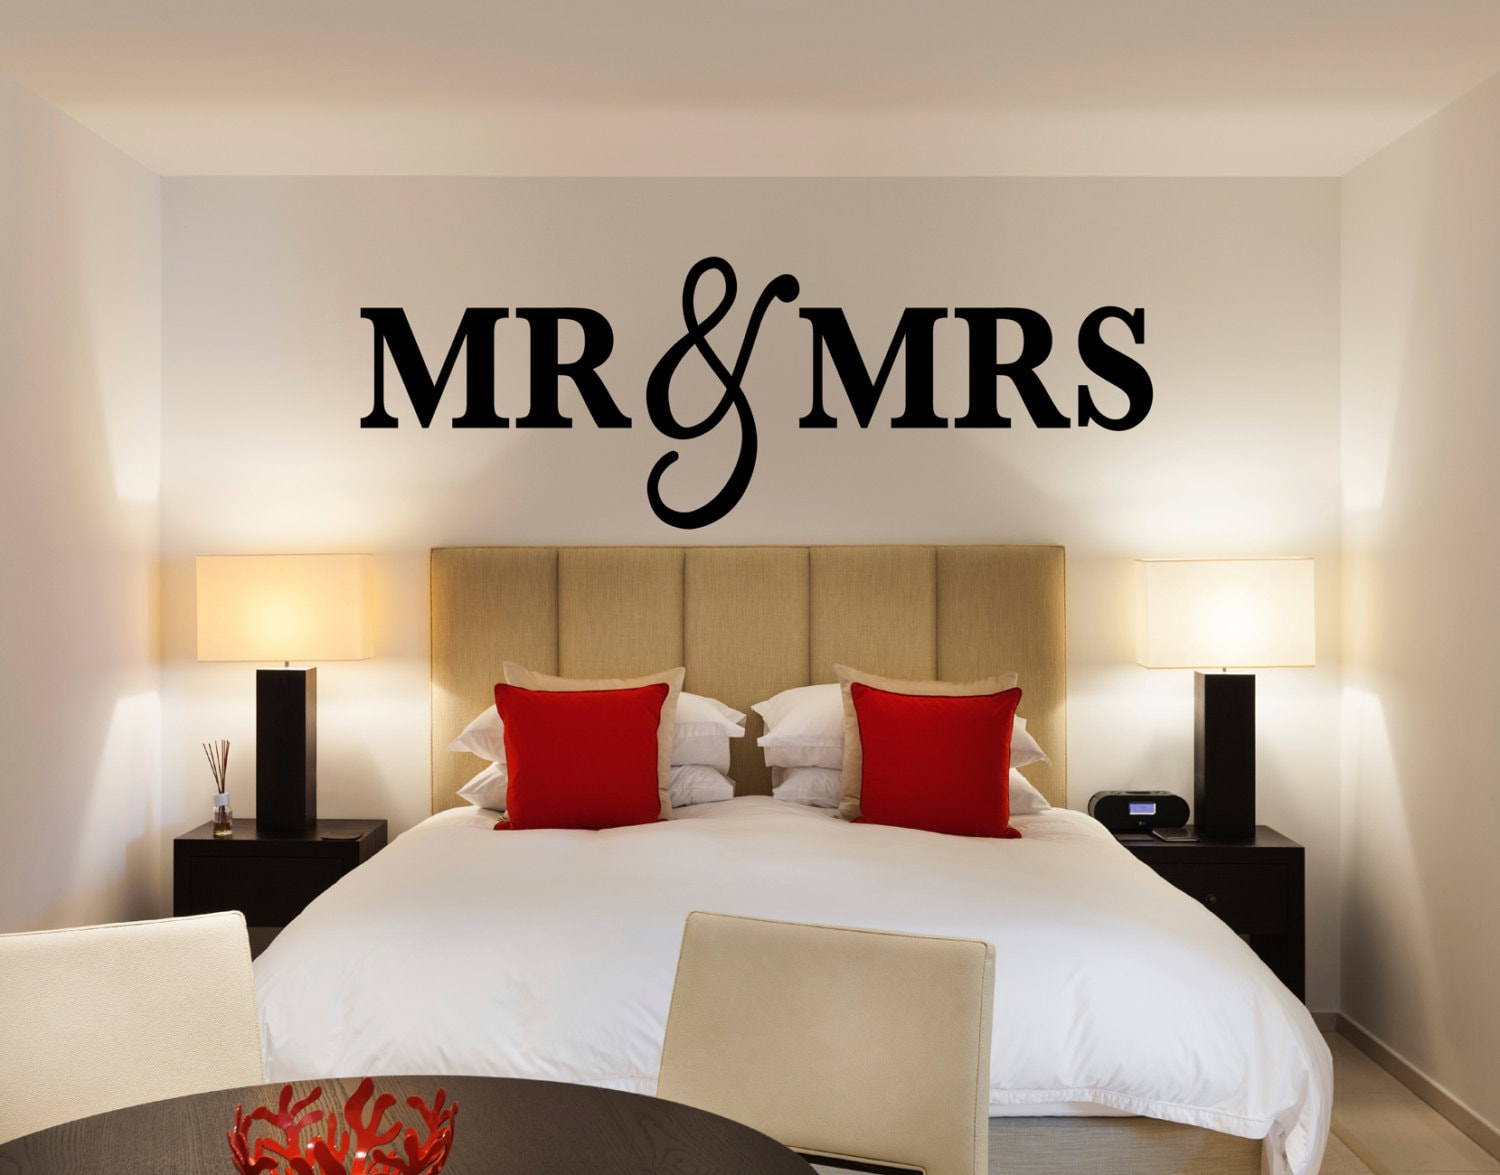 Mr mrs wall sign for bedroom decor mr and mrs sign for zoom amipublicfo Image collections